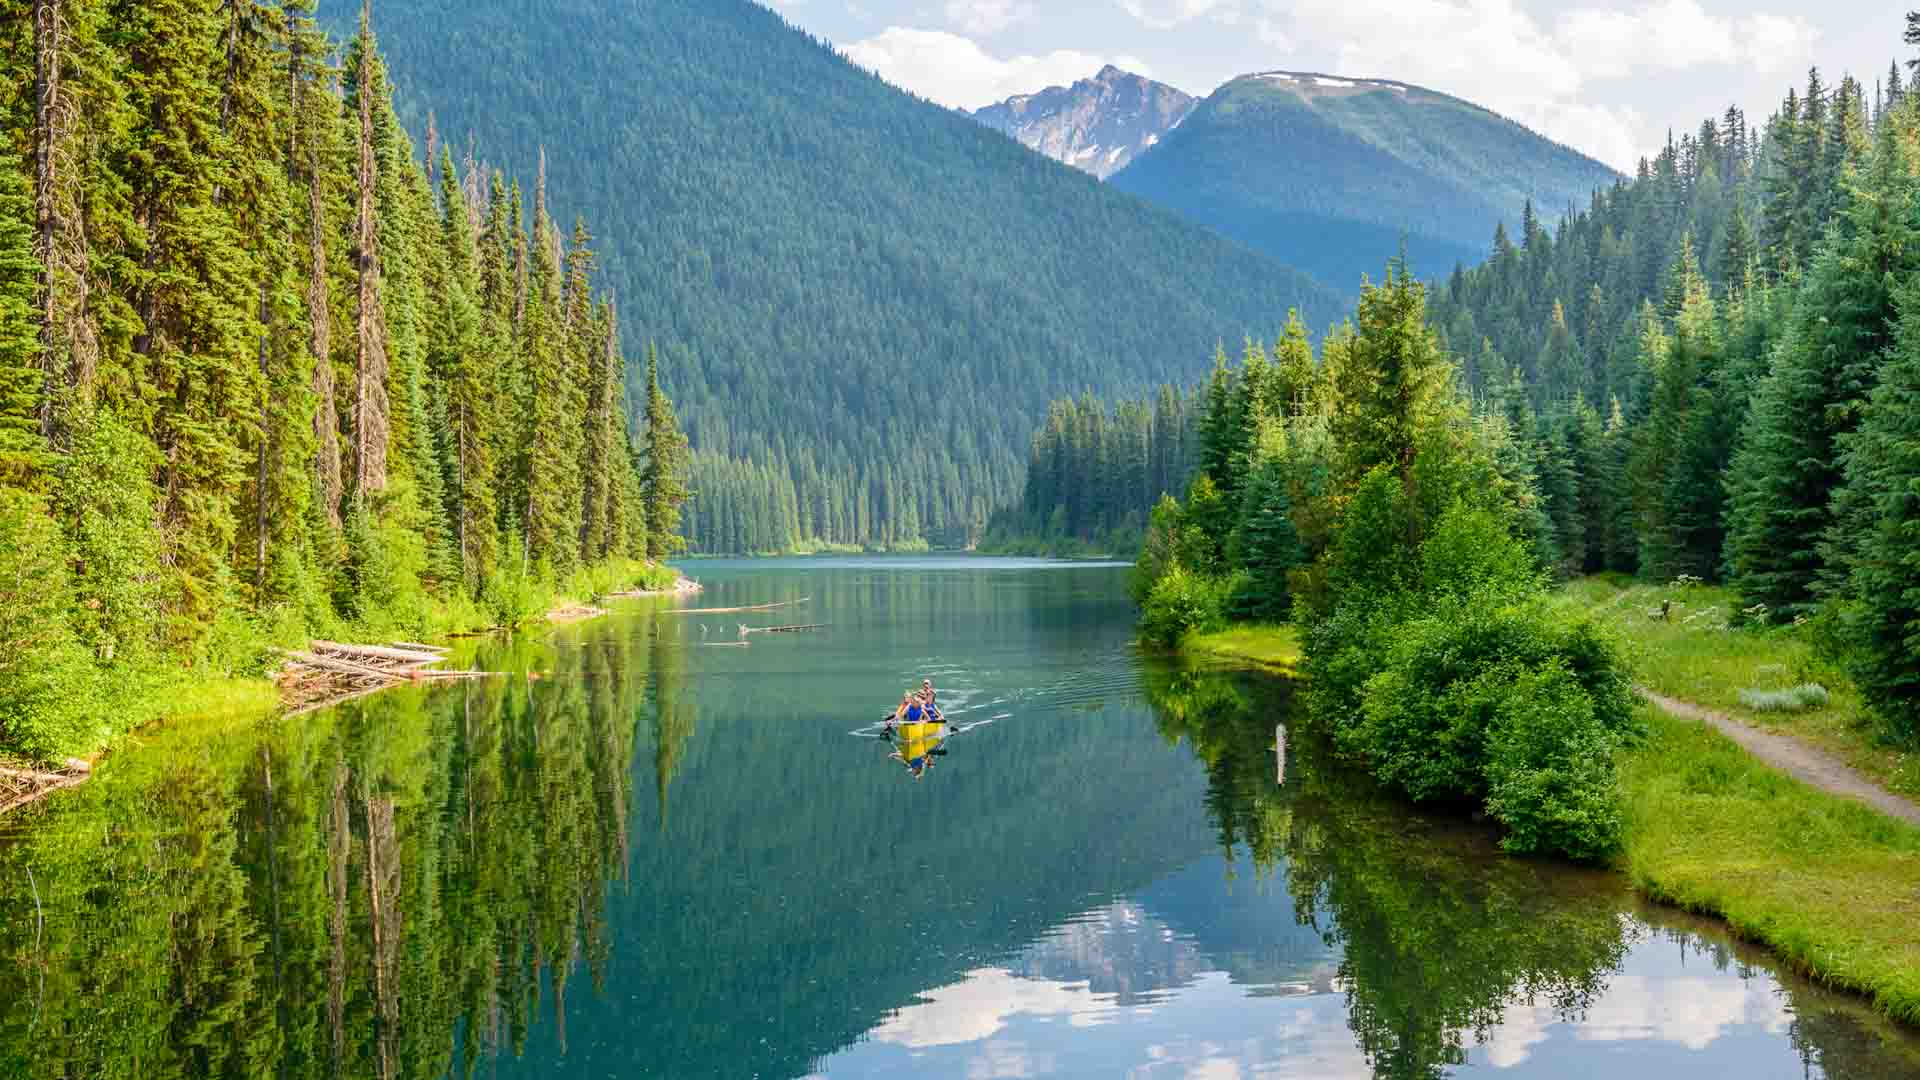 Kayaking in British Columbia, Canada